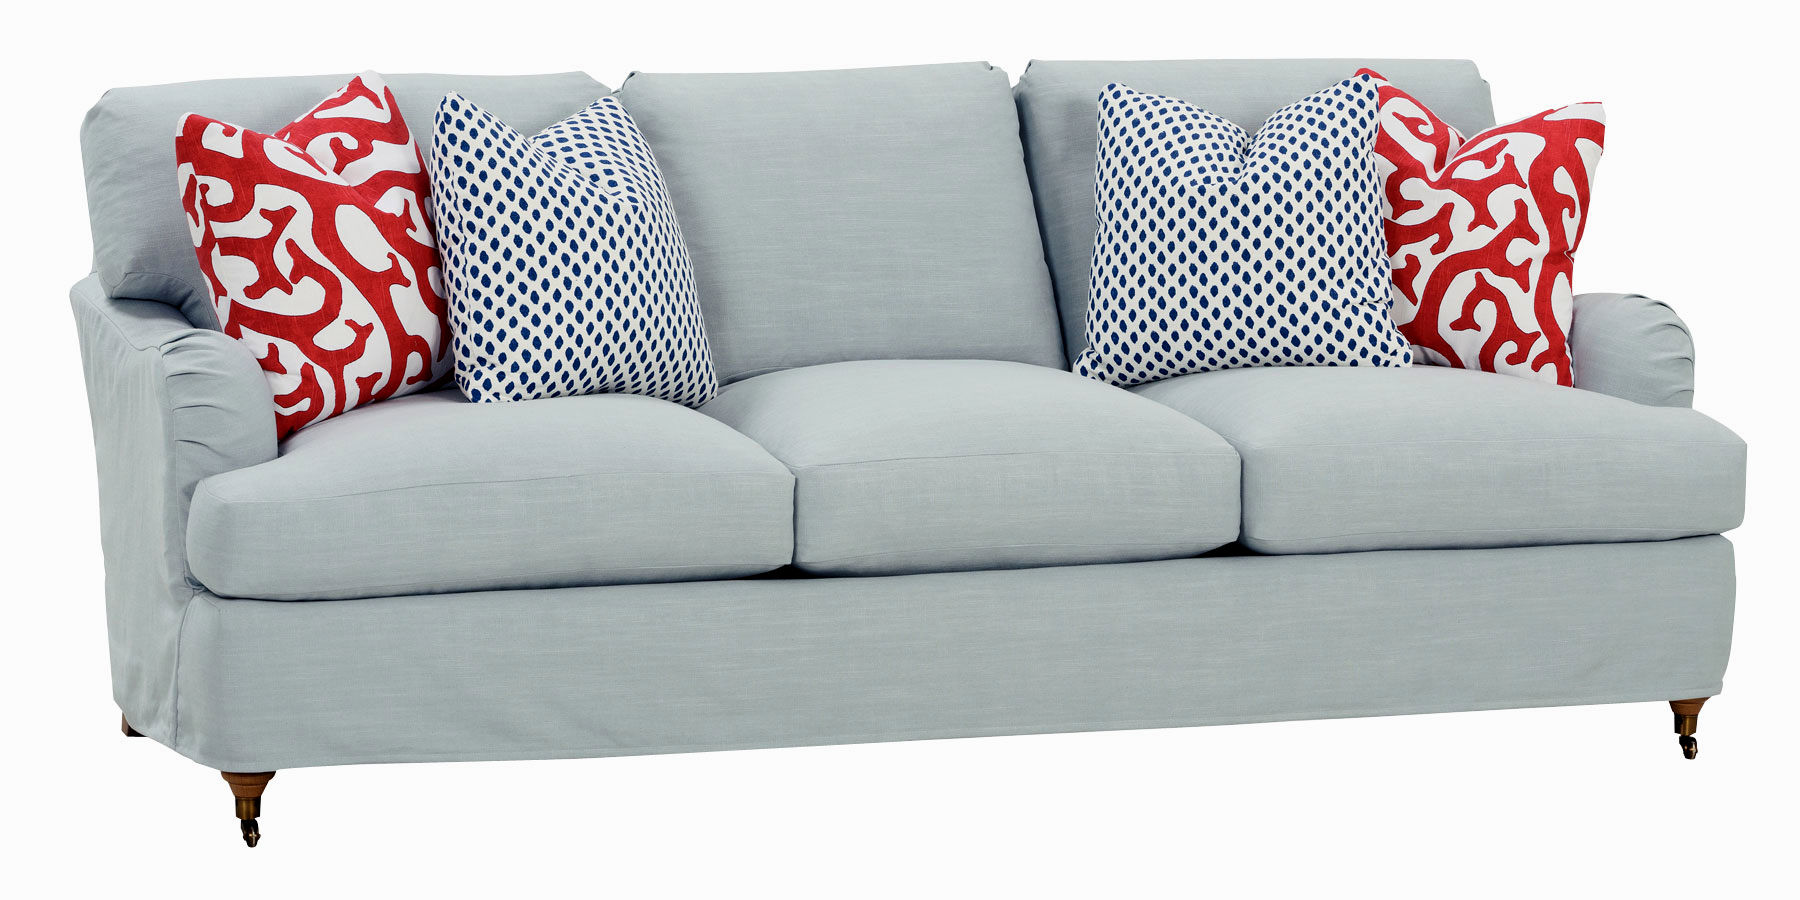 superb black sectional sofa for cheap online-Elegant Black Sectional sofa for Cheap Plan